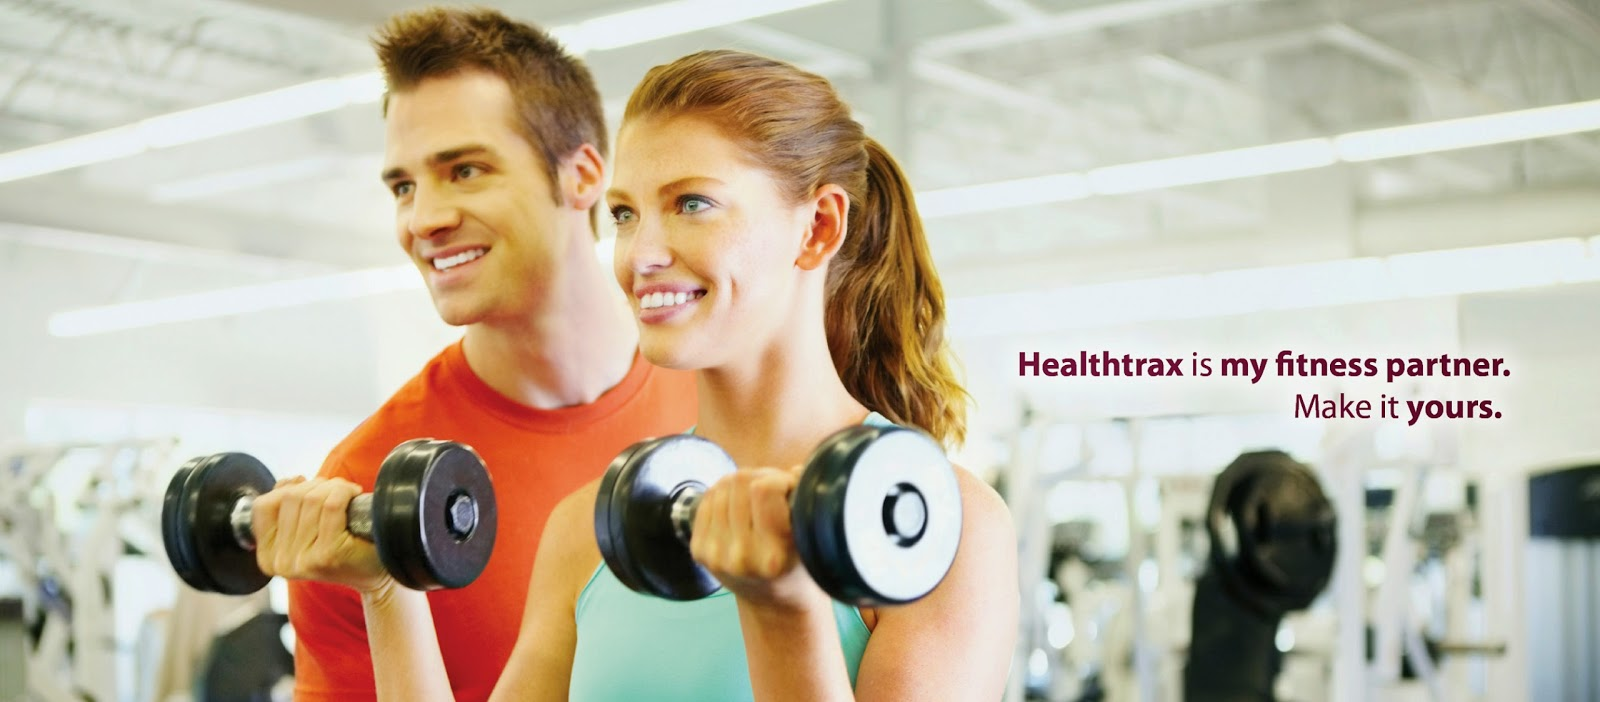 Healthtrax Fitness & Wellness - photo